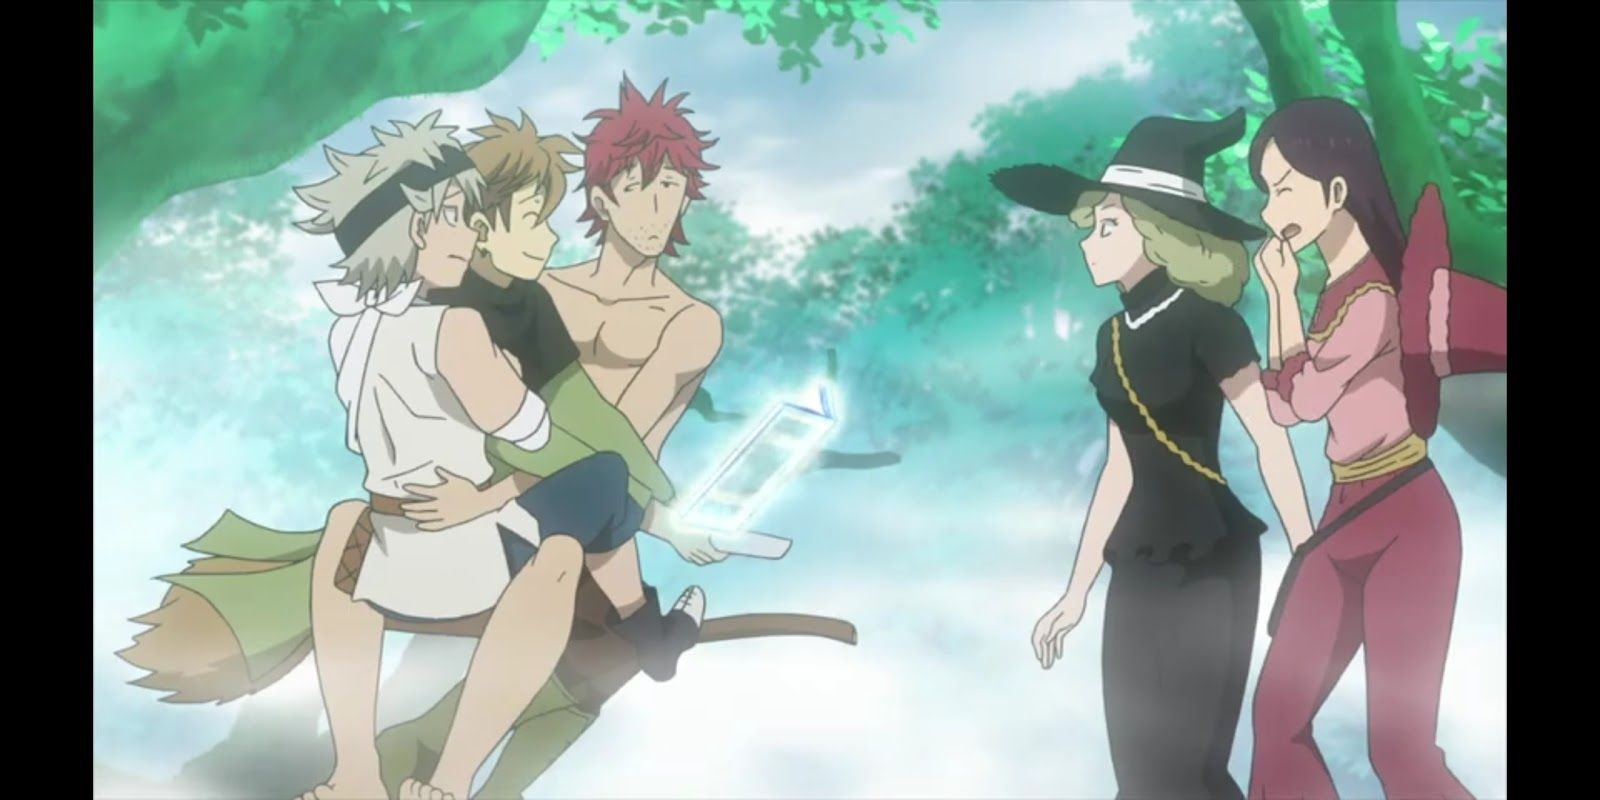 Black clover episode 57 Google Search in 2020 Anime